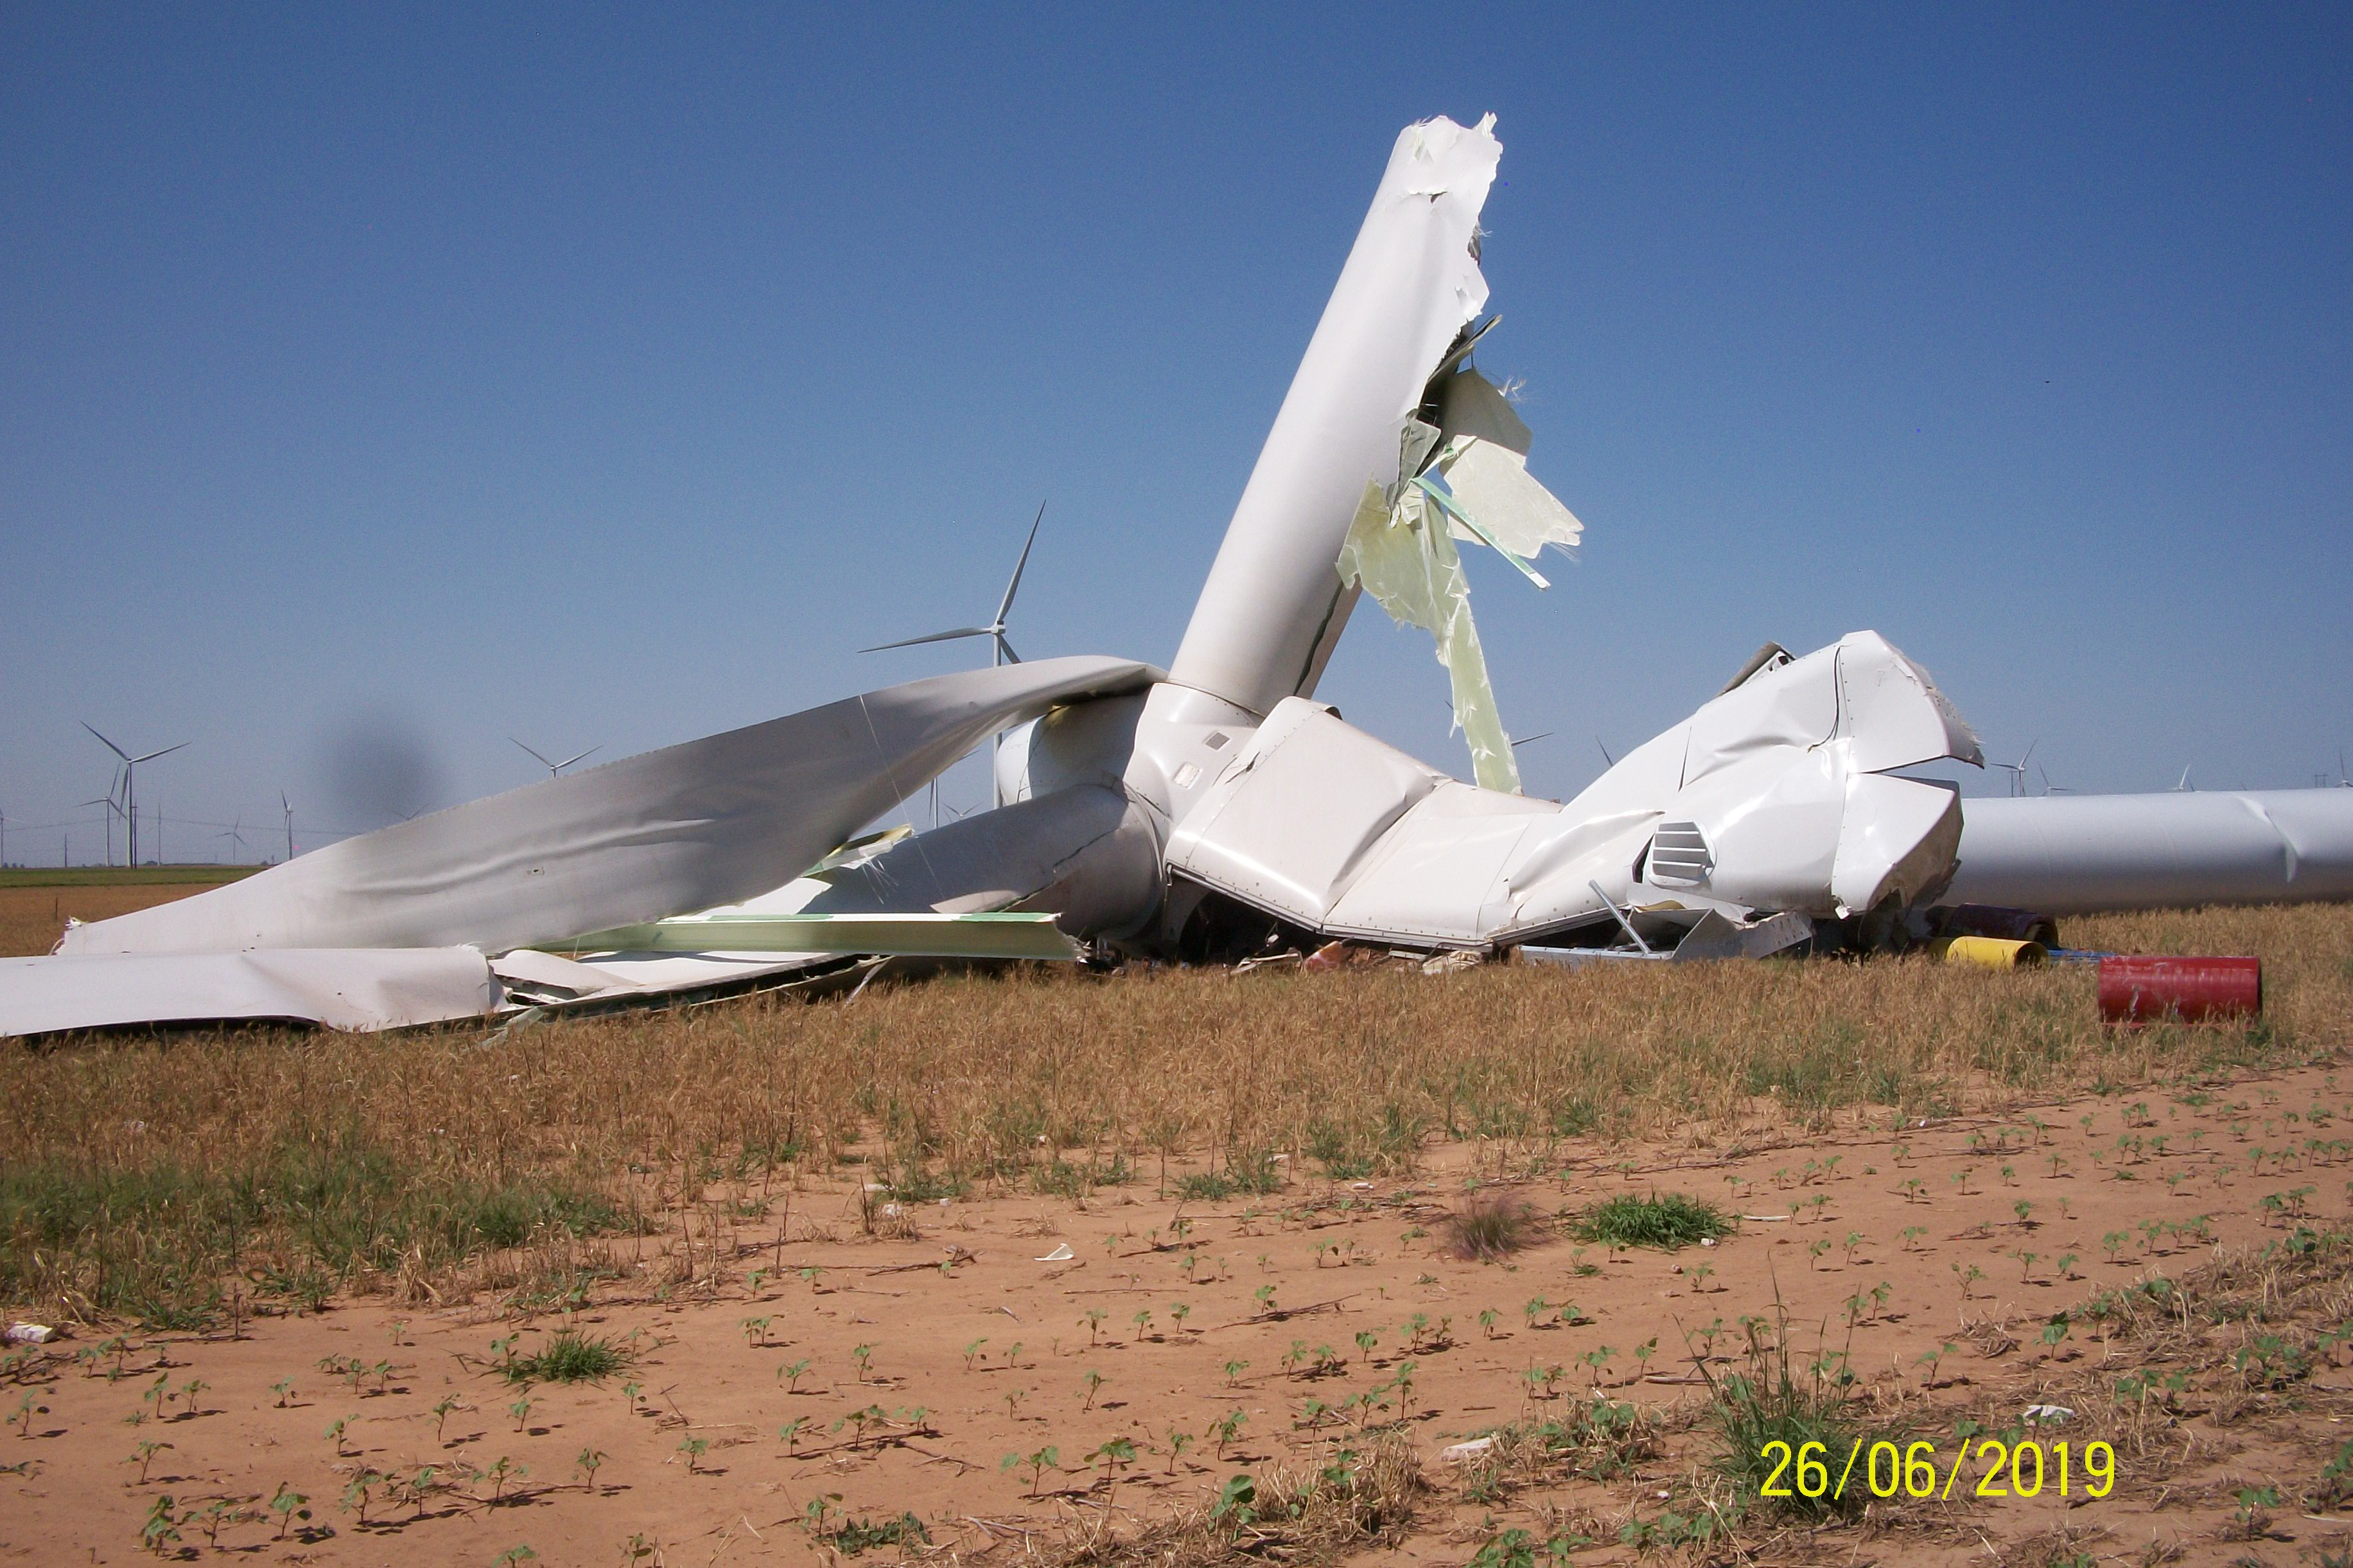 The Monday evening storm downed a wind turbine near Petersburg. The picture was taken by David Hipolito.